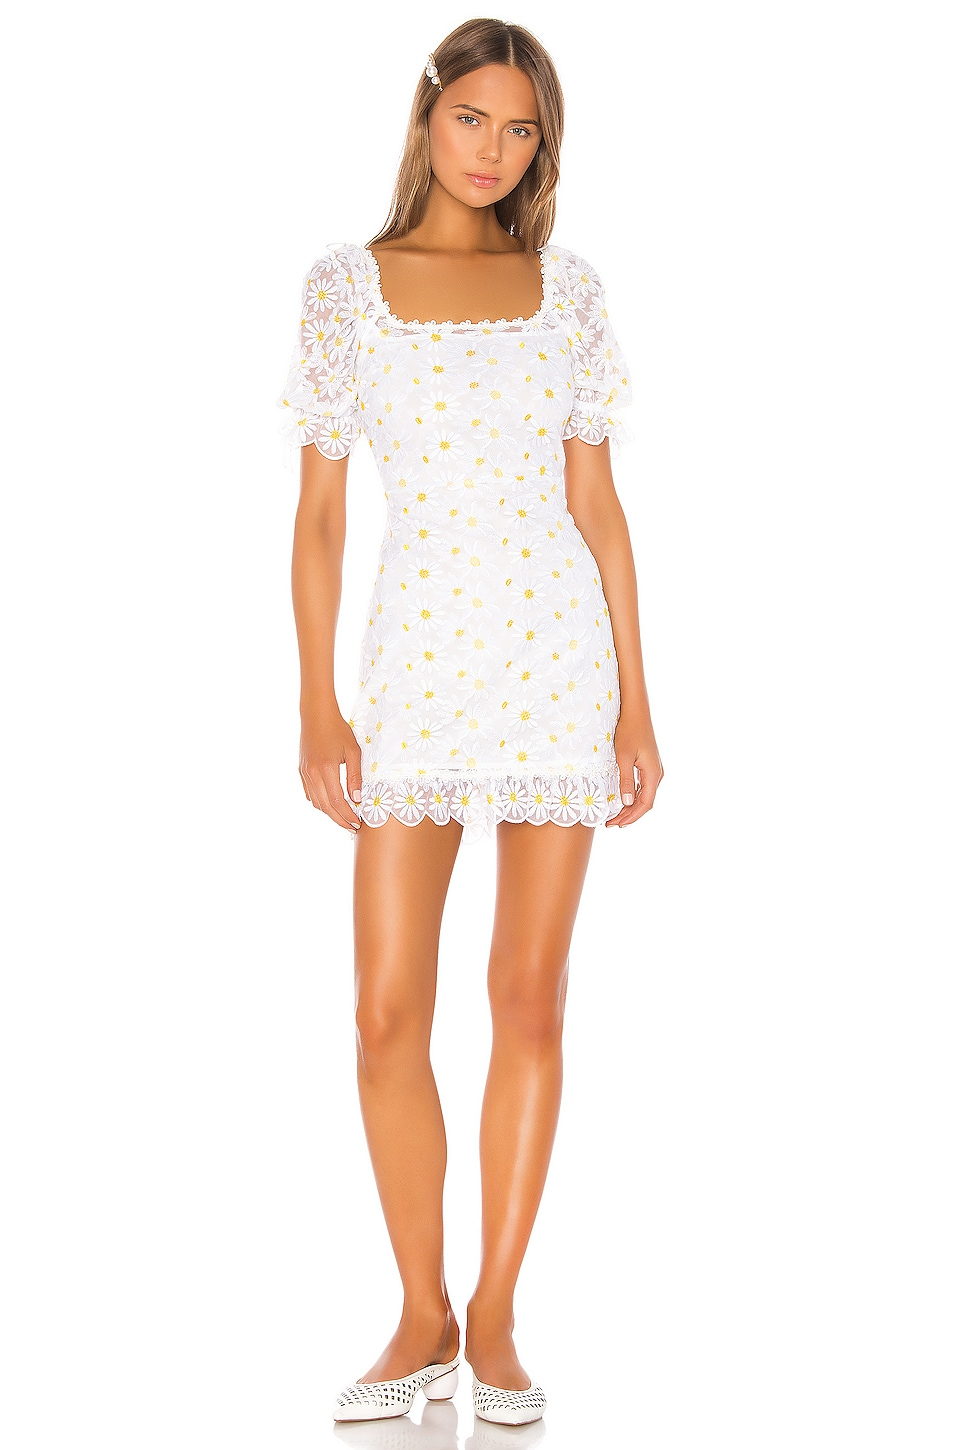 For Love & Lemons Brulee Daisy Mini Dress in Daisy